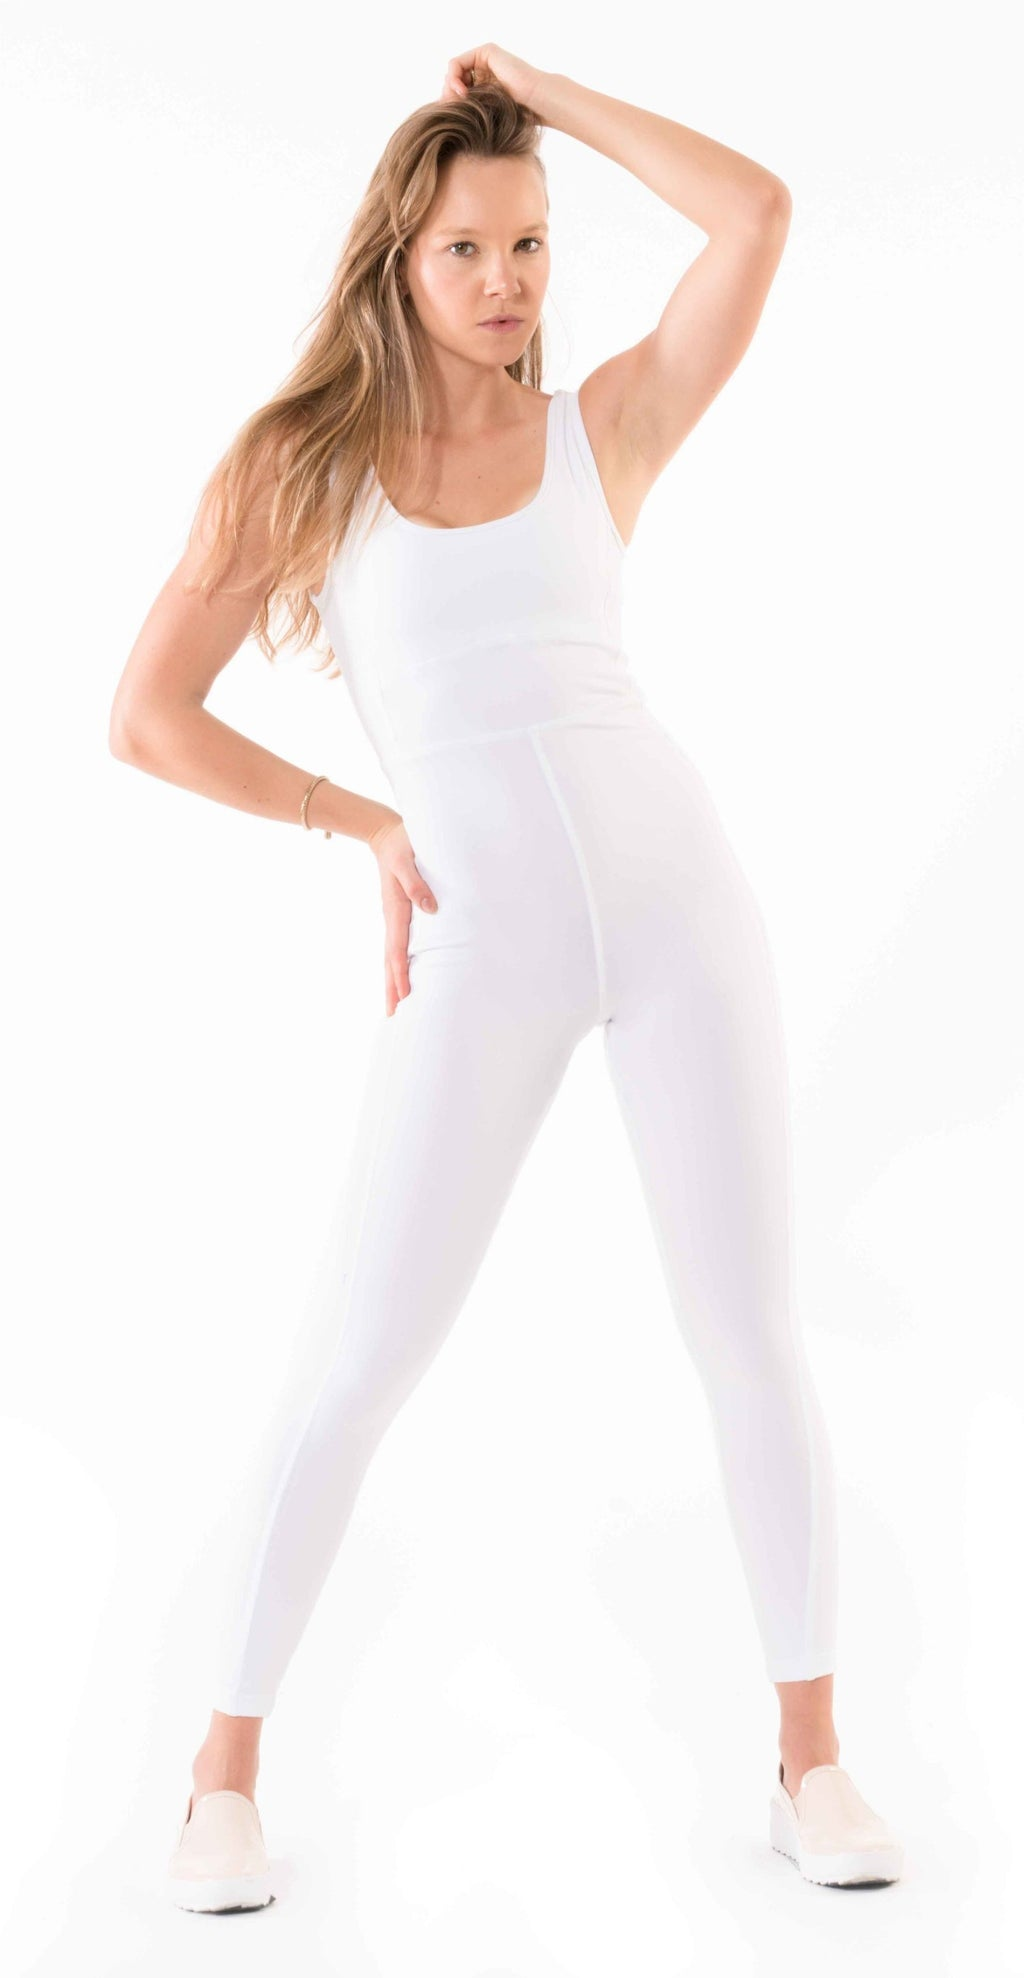 Shama Jade Invisible Jumpsuit: White - Shama Jade | Women's Luxury Yoga Jumpsuits and Activewear